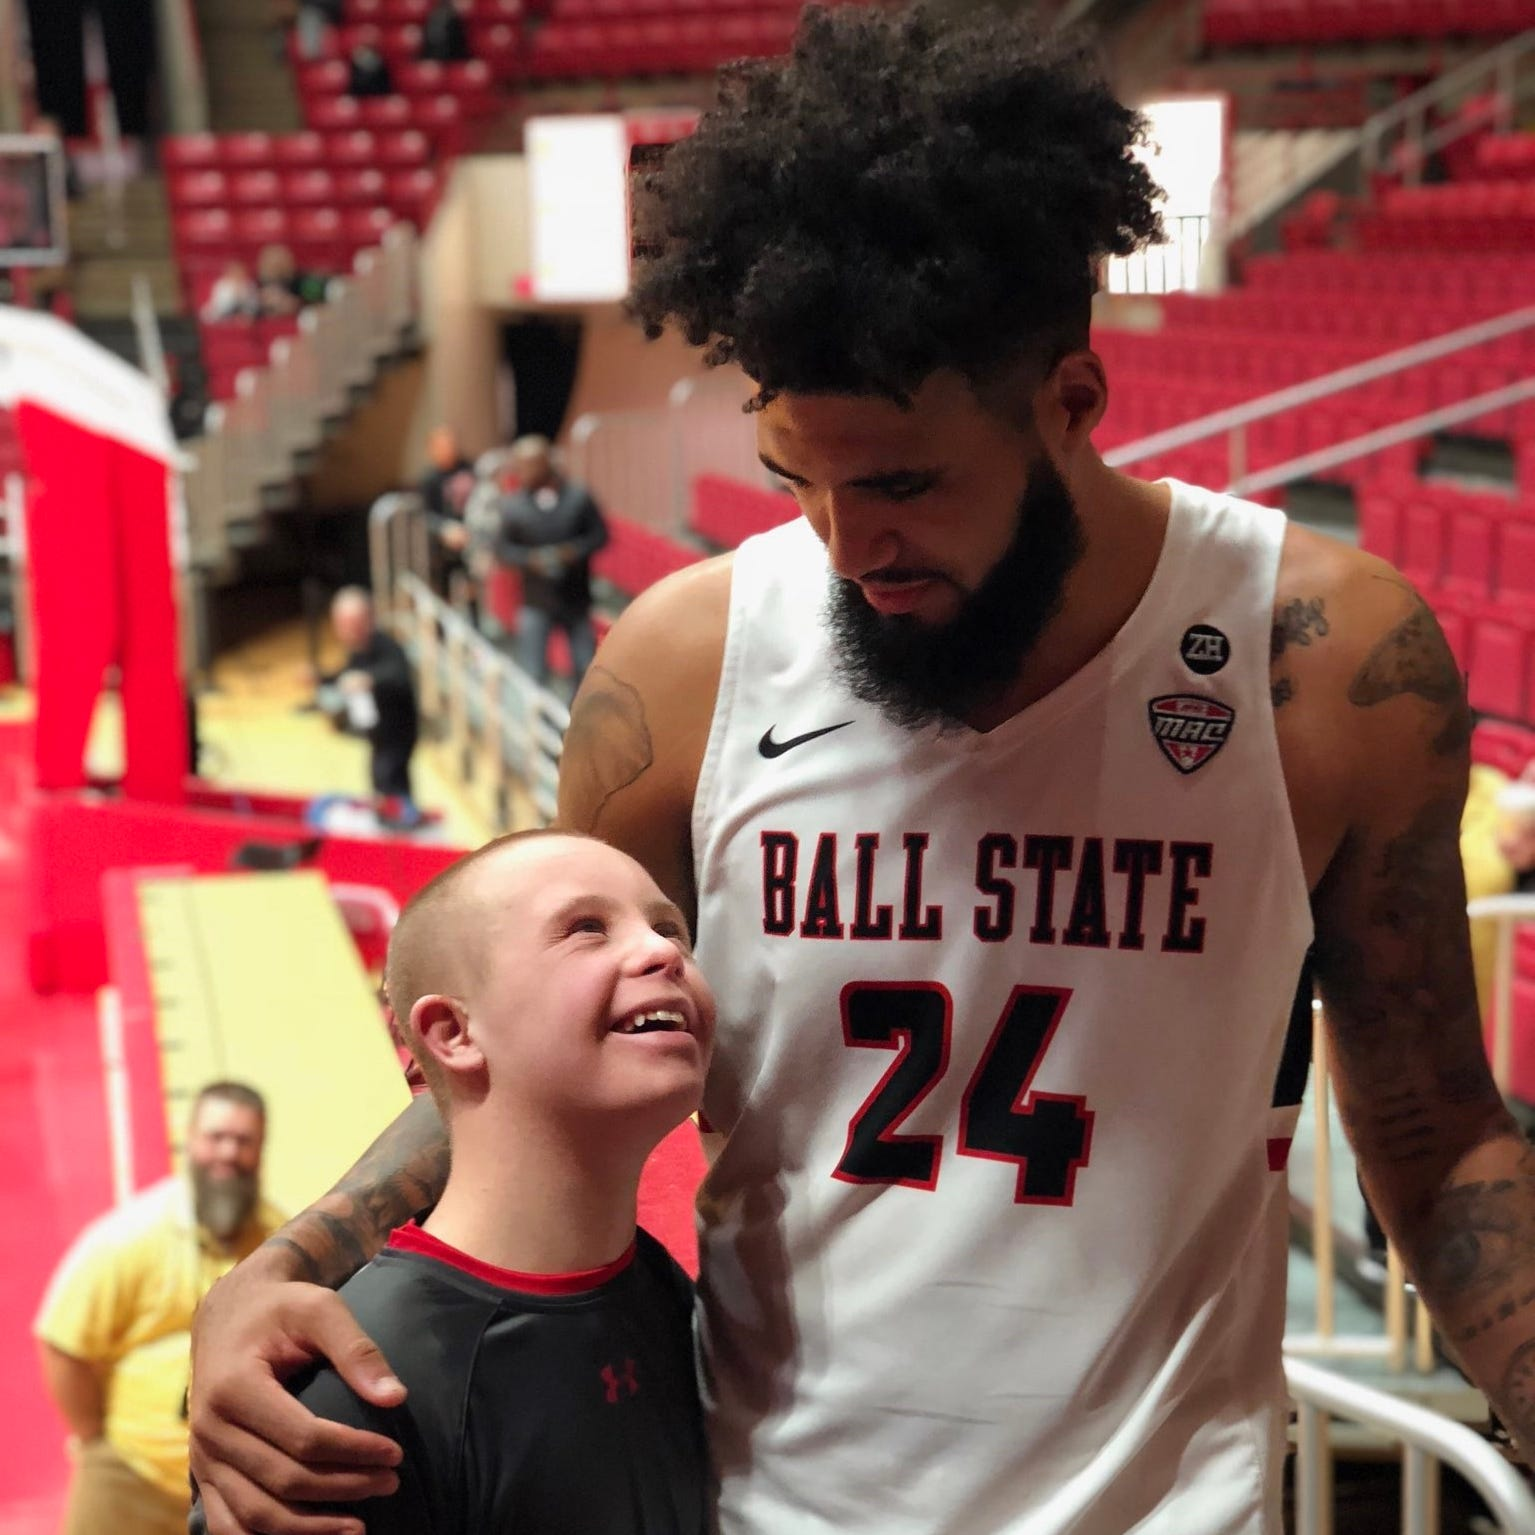 Trey Moses will be remembered for much more than basketball at Ball State